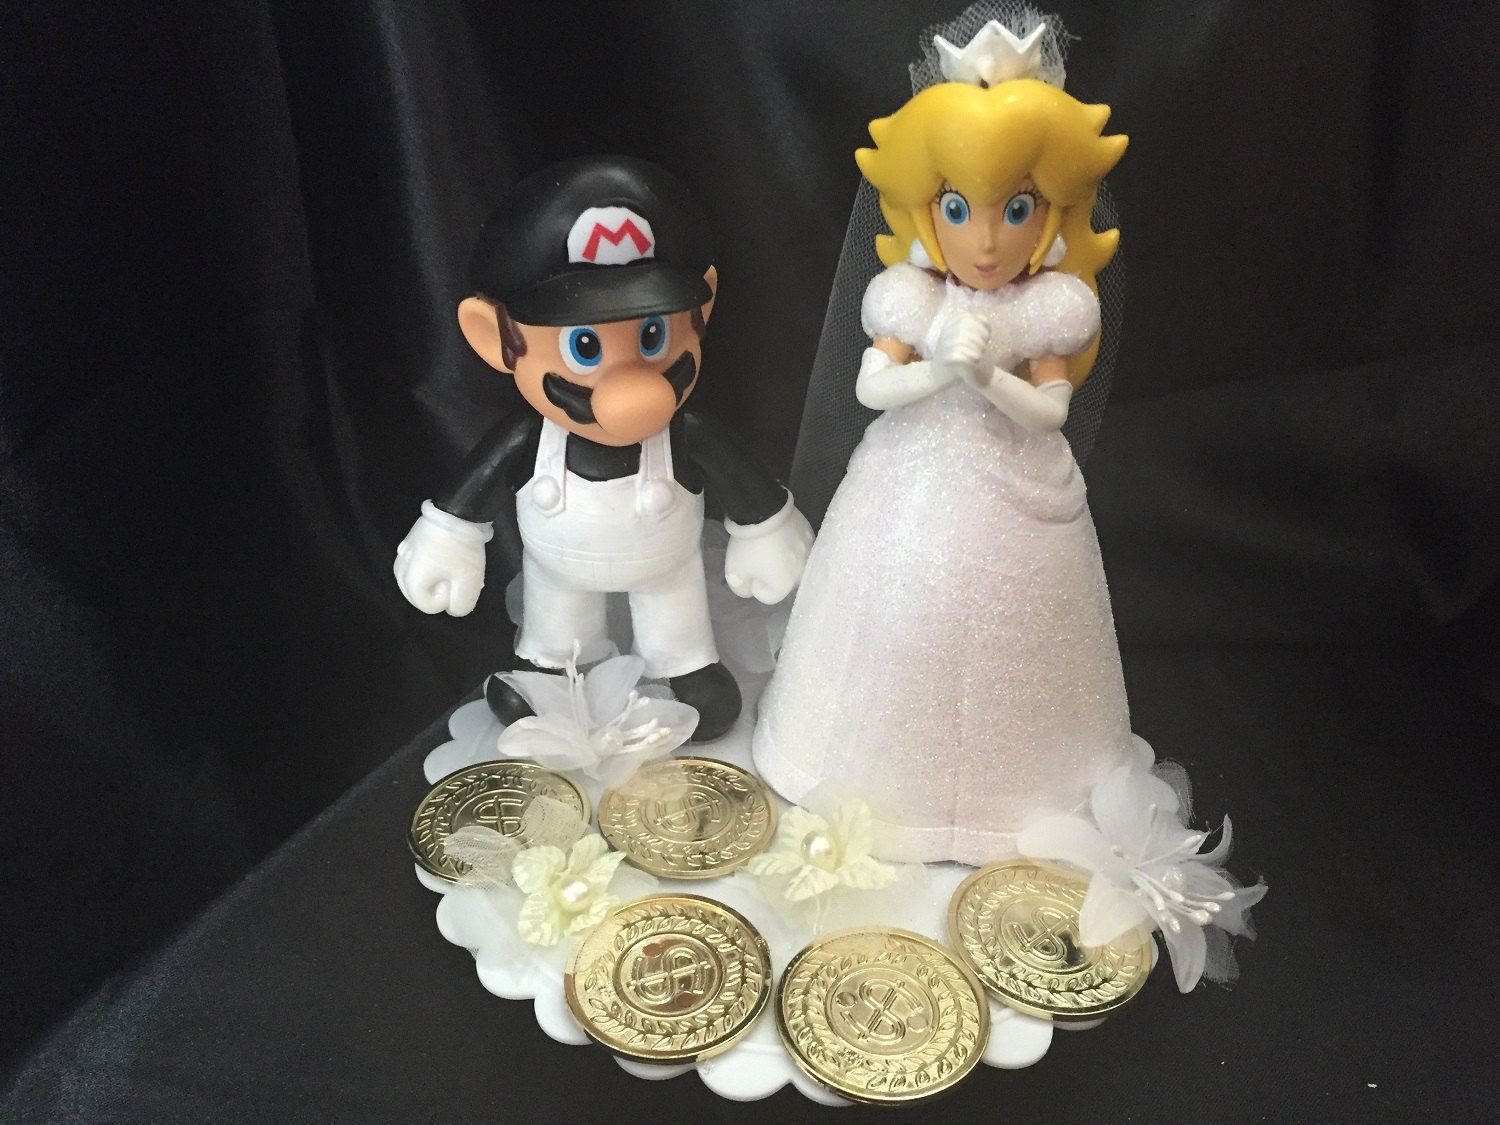 Mario peach wedding